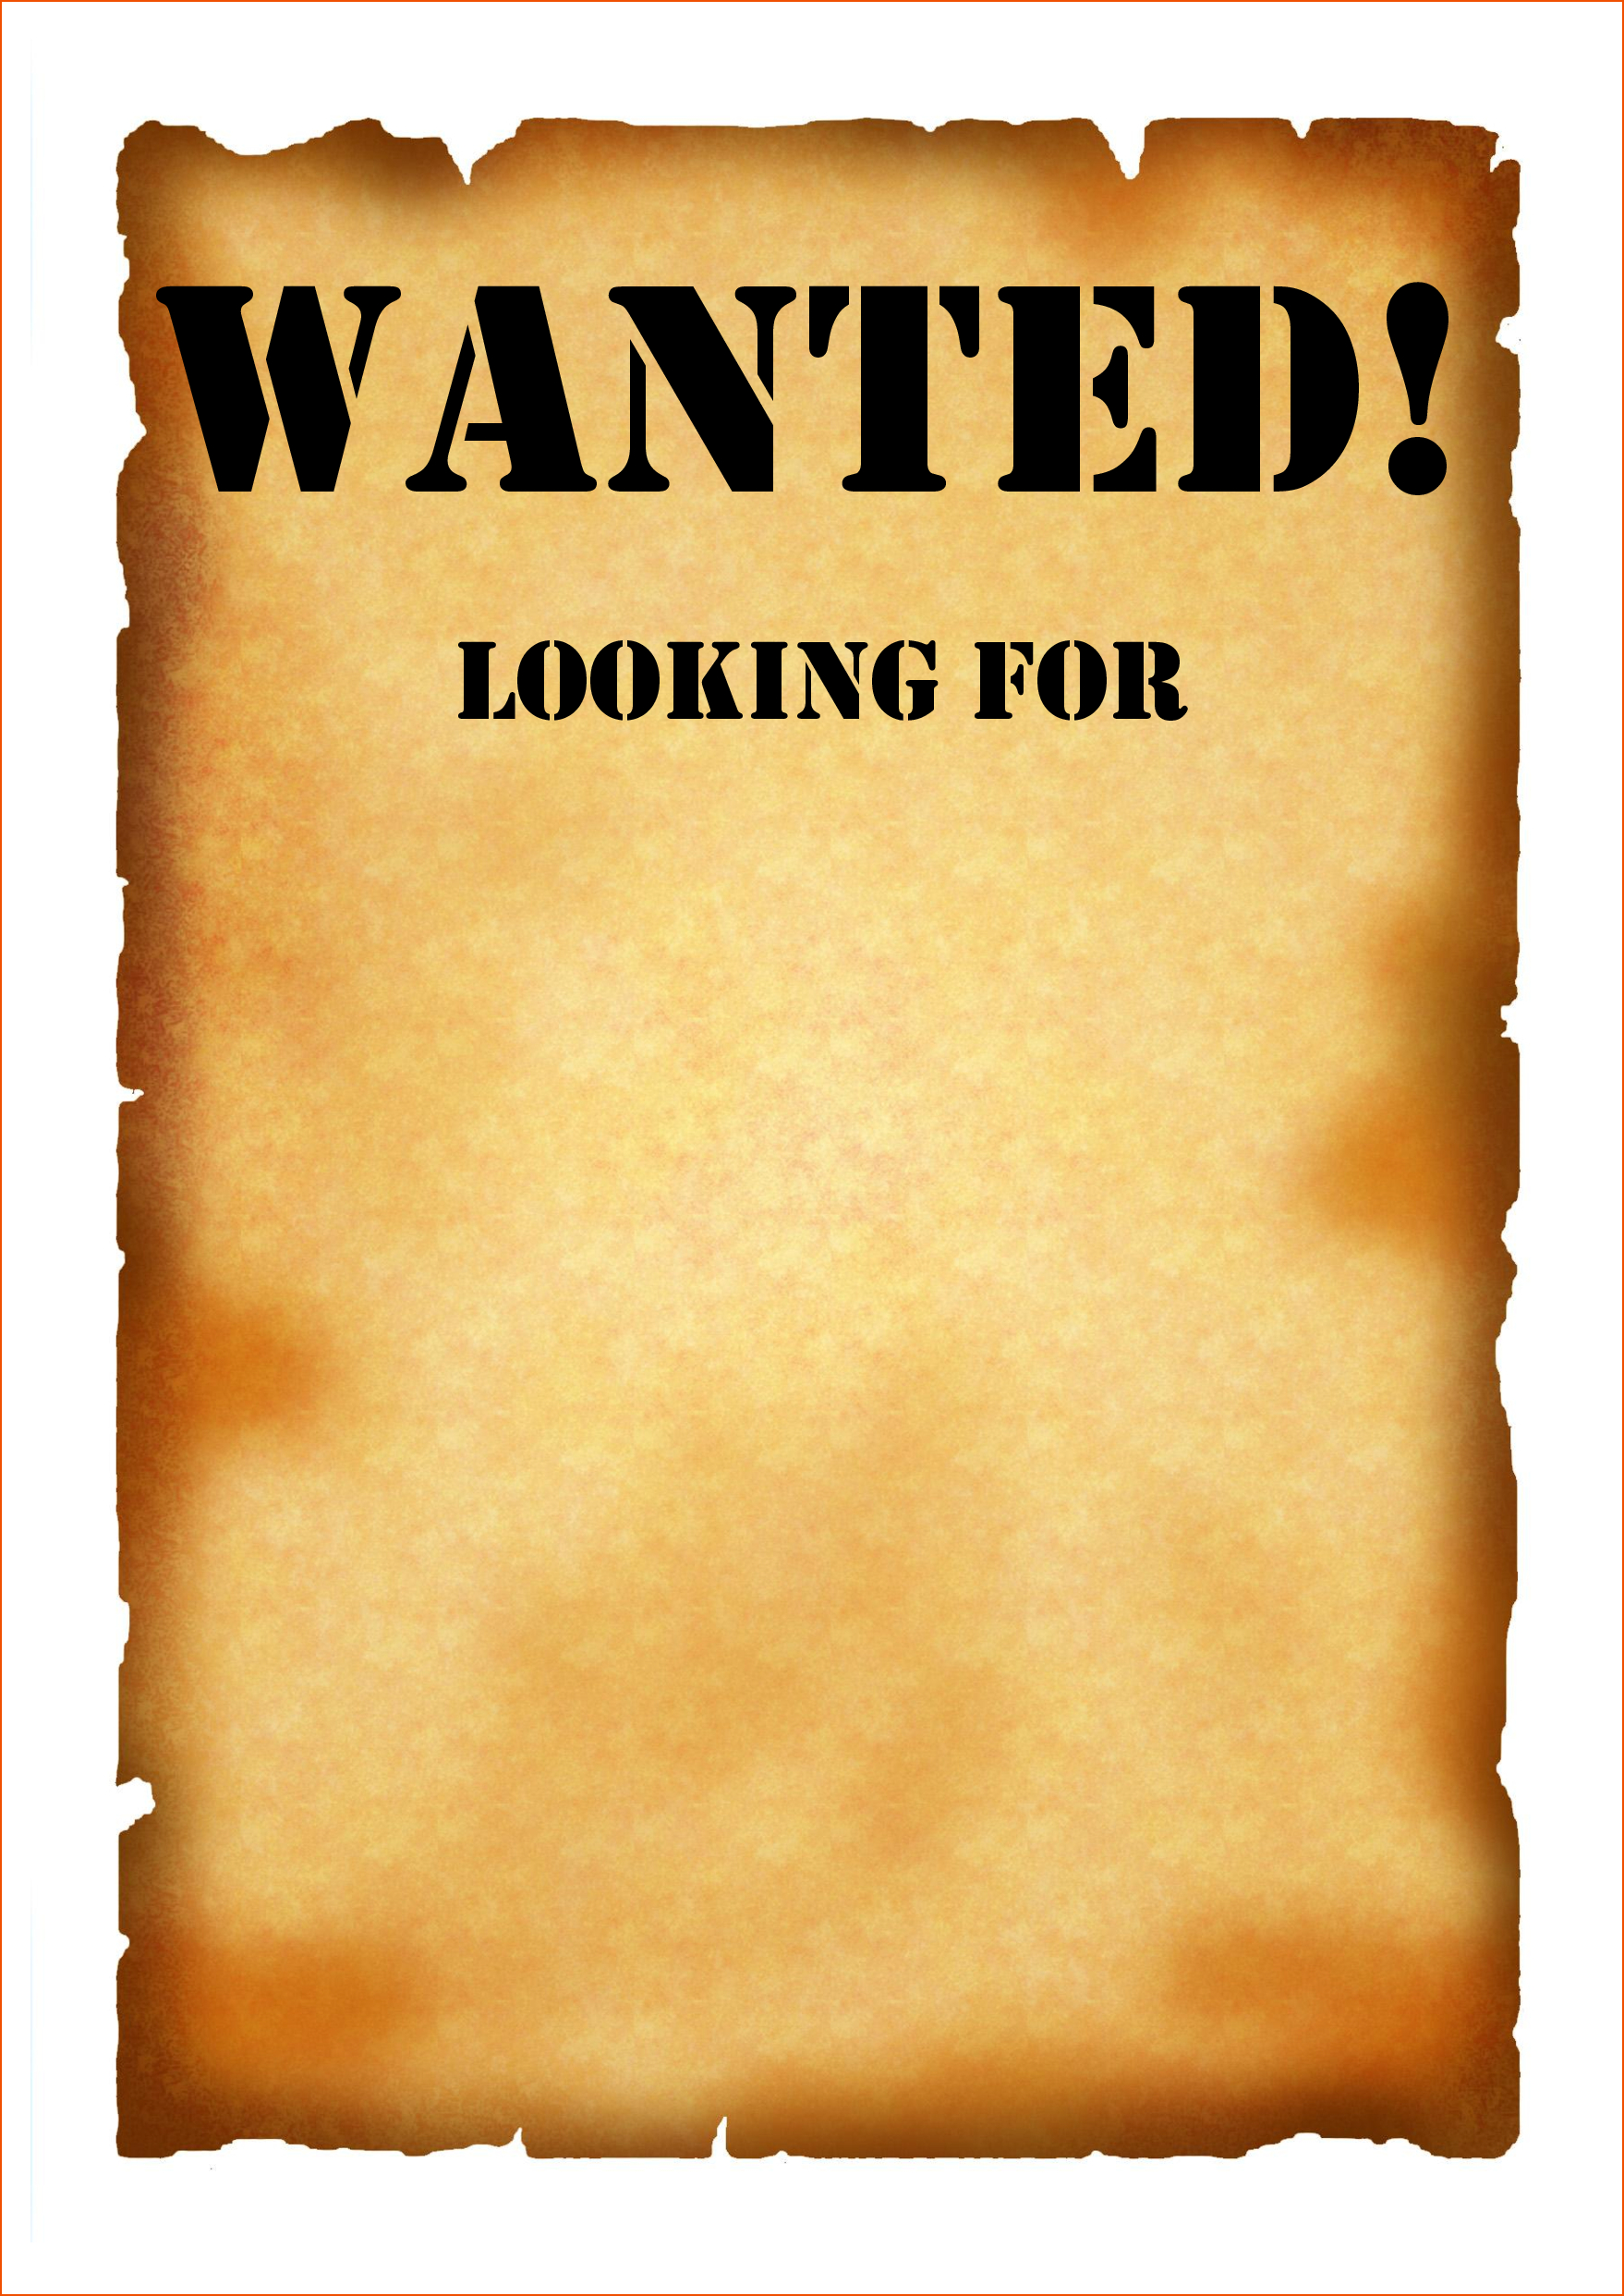 Wanted Poster Template 50 Printable Templates Free Pdf Psd regarding Wanted Poster Template Free Printable